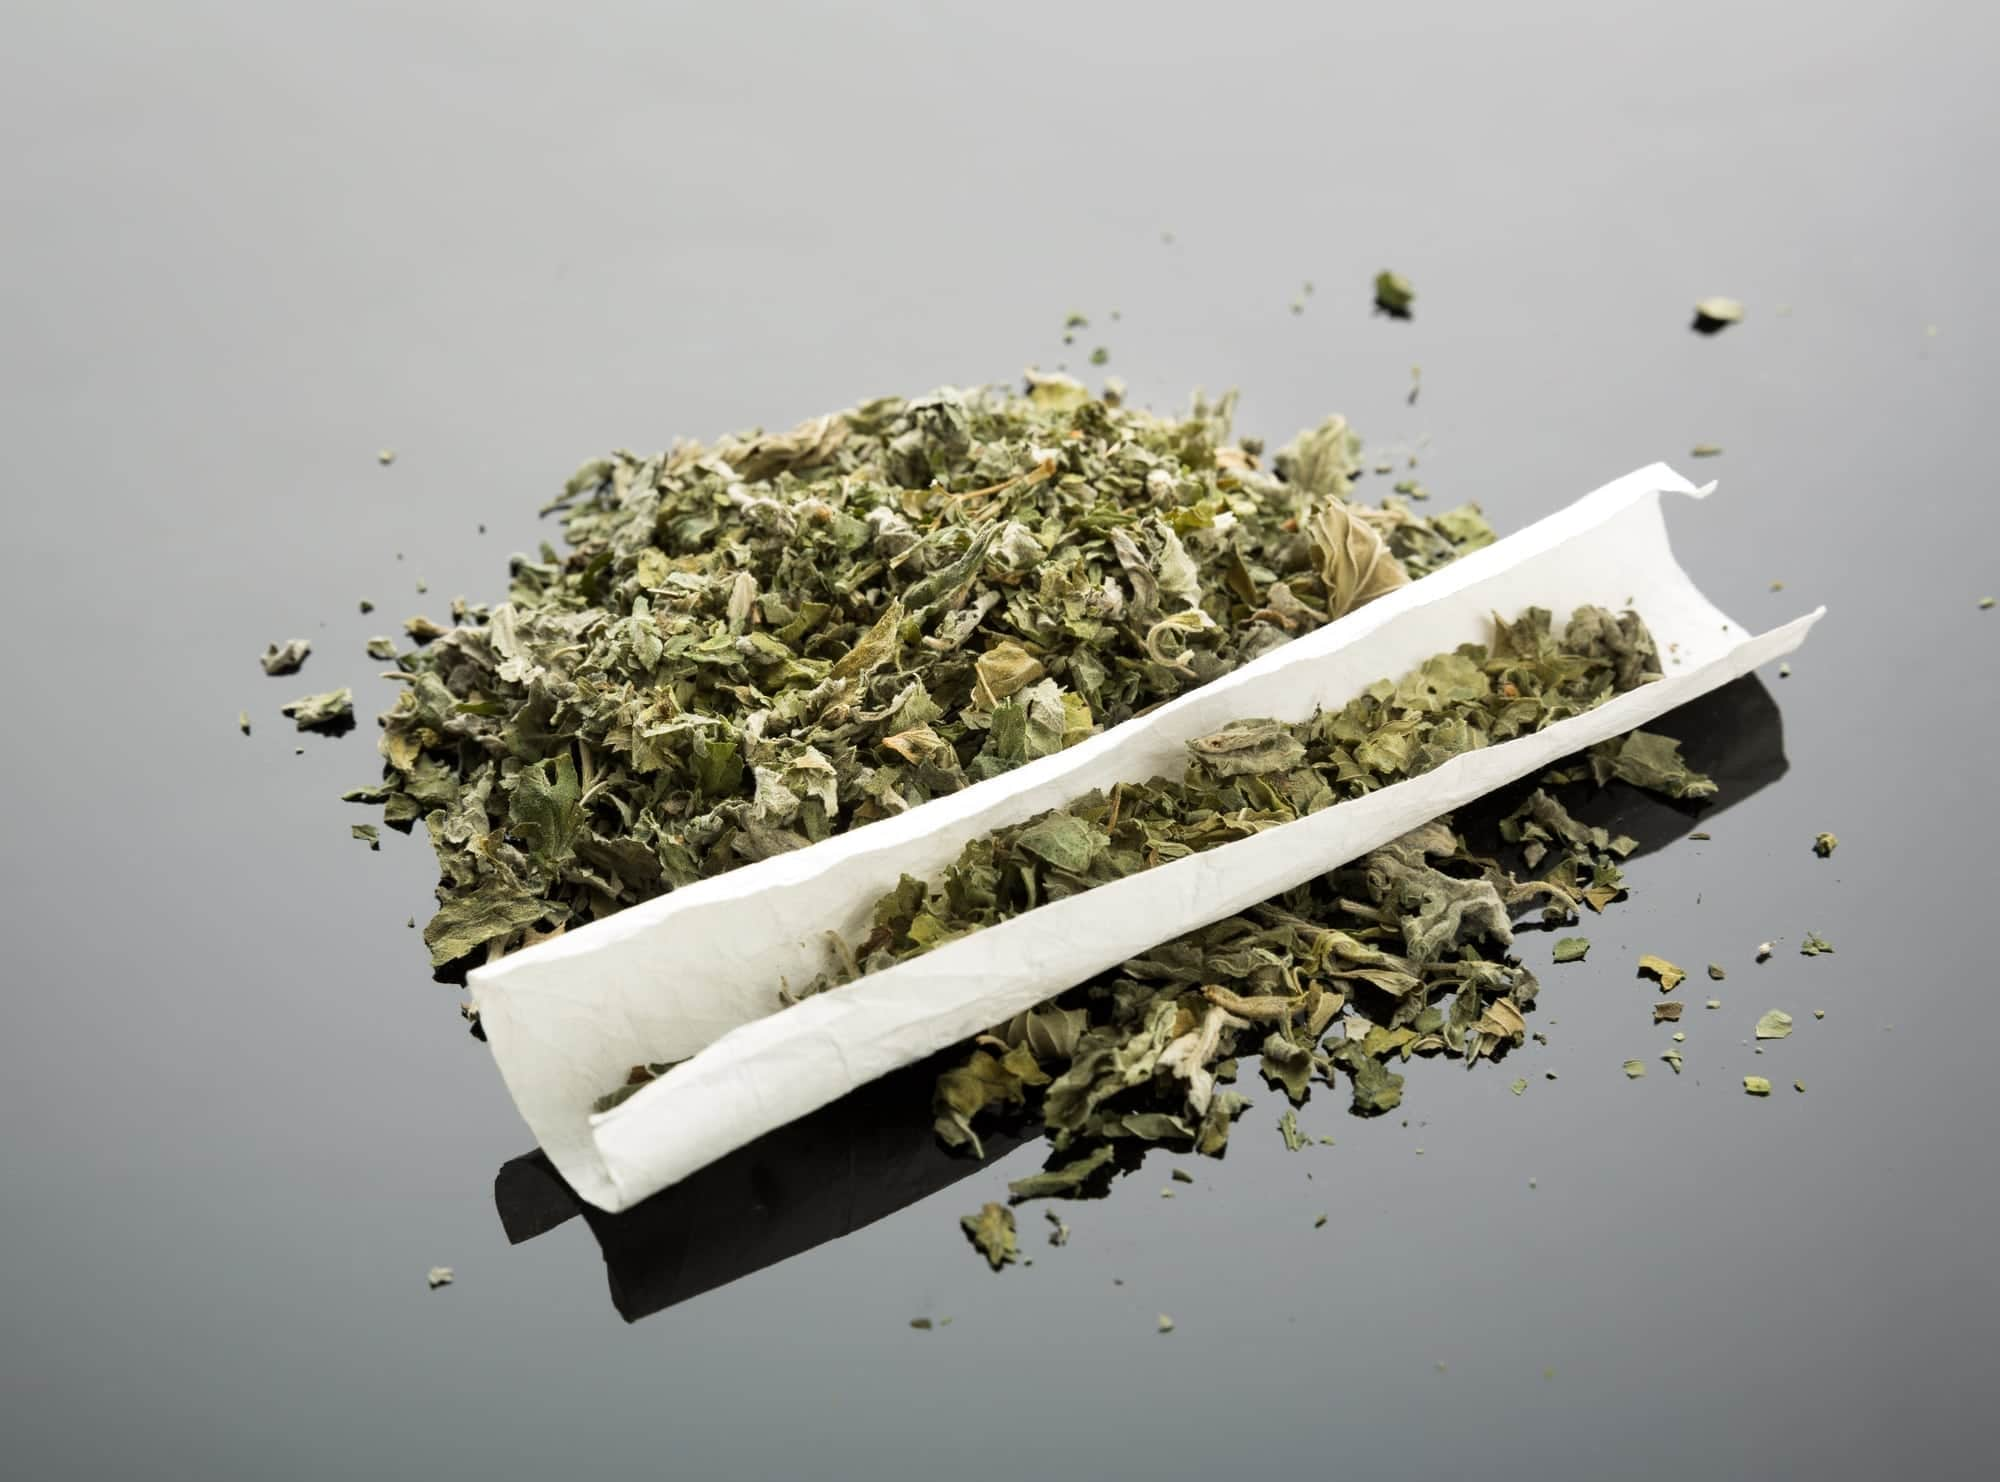 Teen Caught Smoking Pot And Suggests Teen Drug Testing